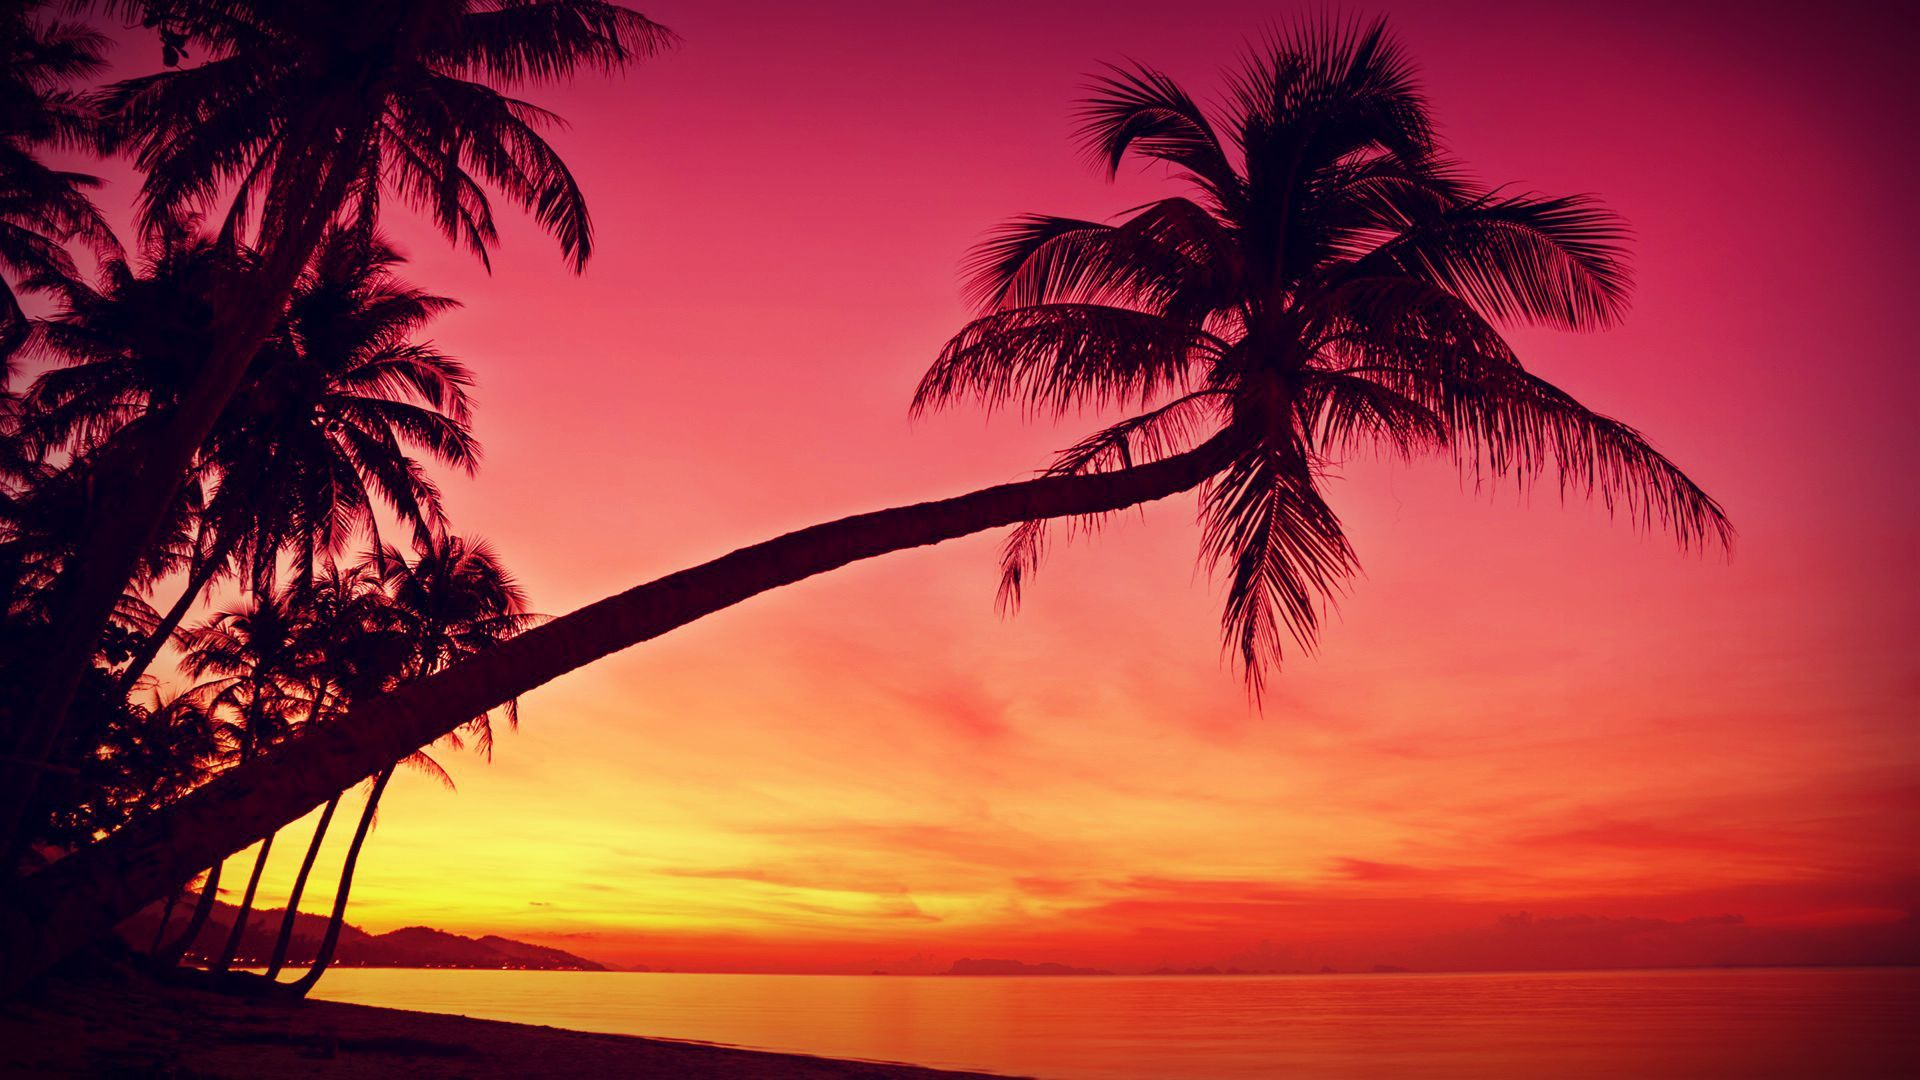 HD Tropical, Sunset, Palm Trees, Silhouette, Beach